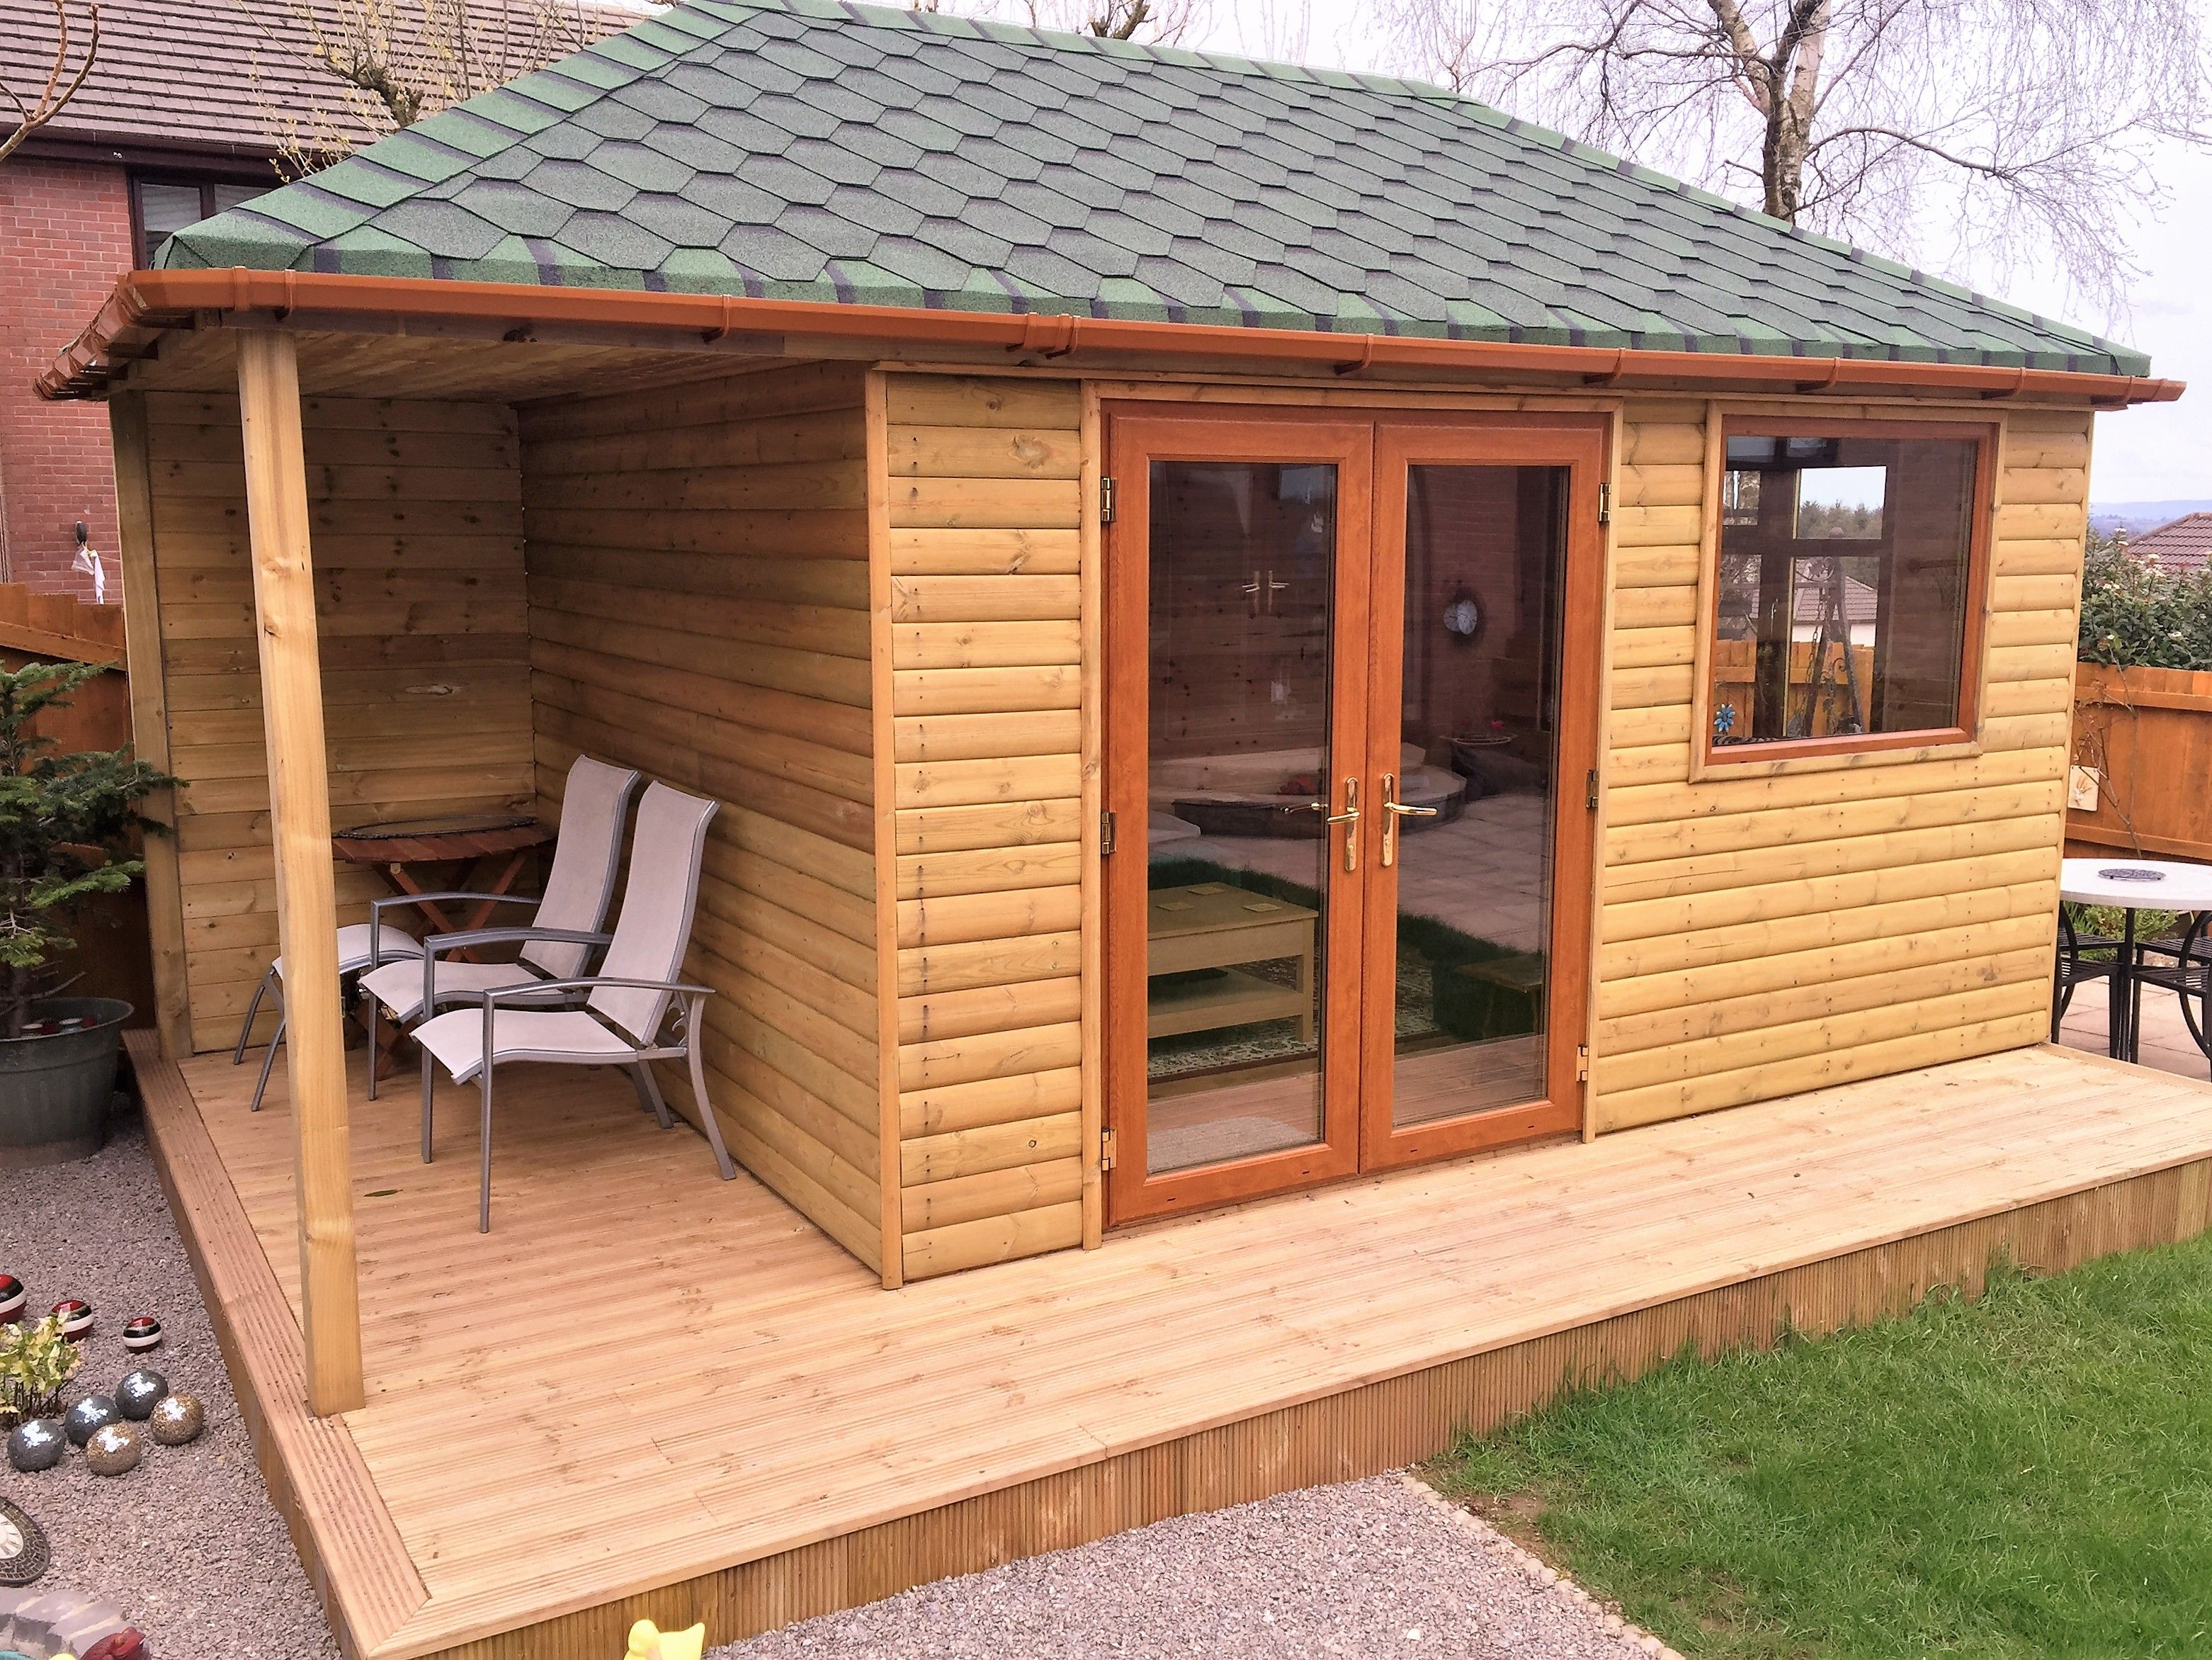 Garden Room Made To Order By Davies Timber Wales Ltd,